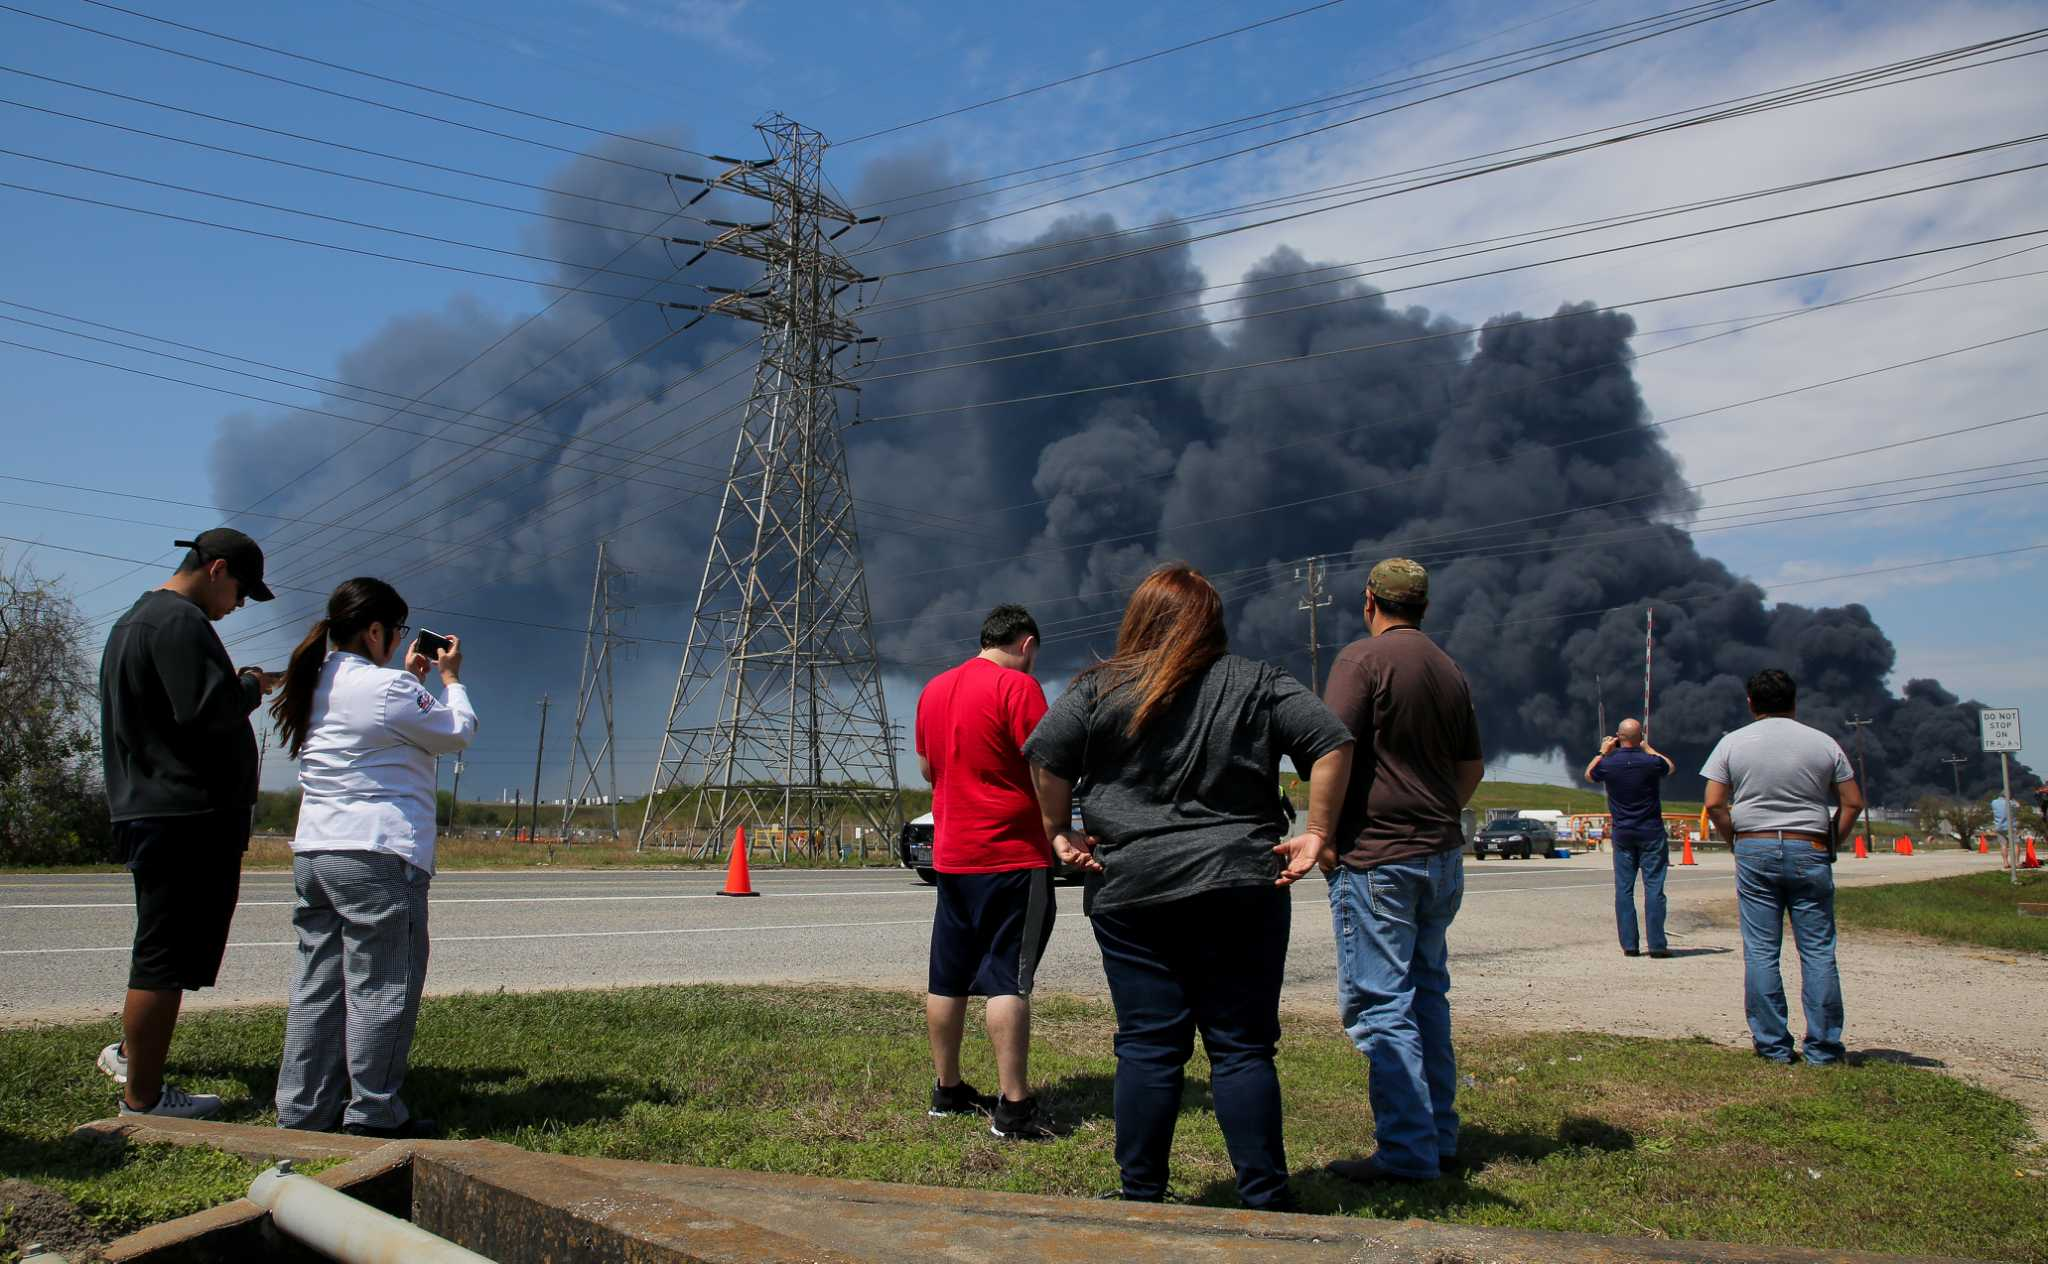 Deer Park chemical fire extinguished overnight, ITC says